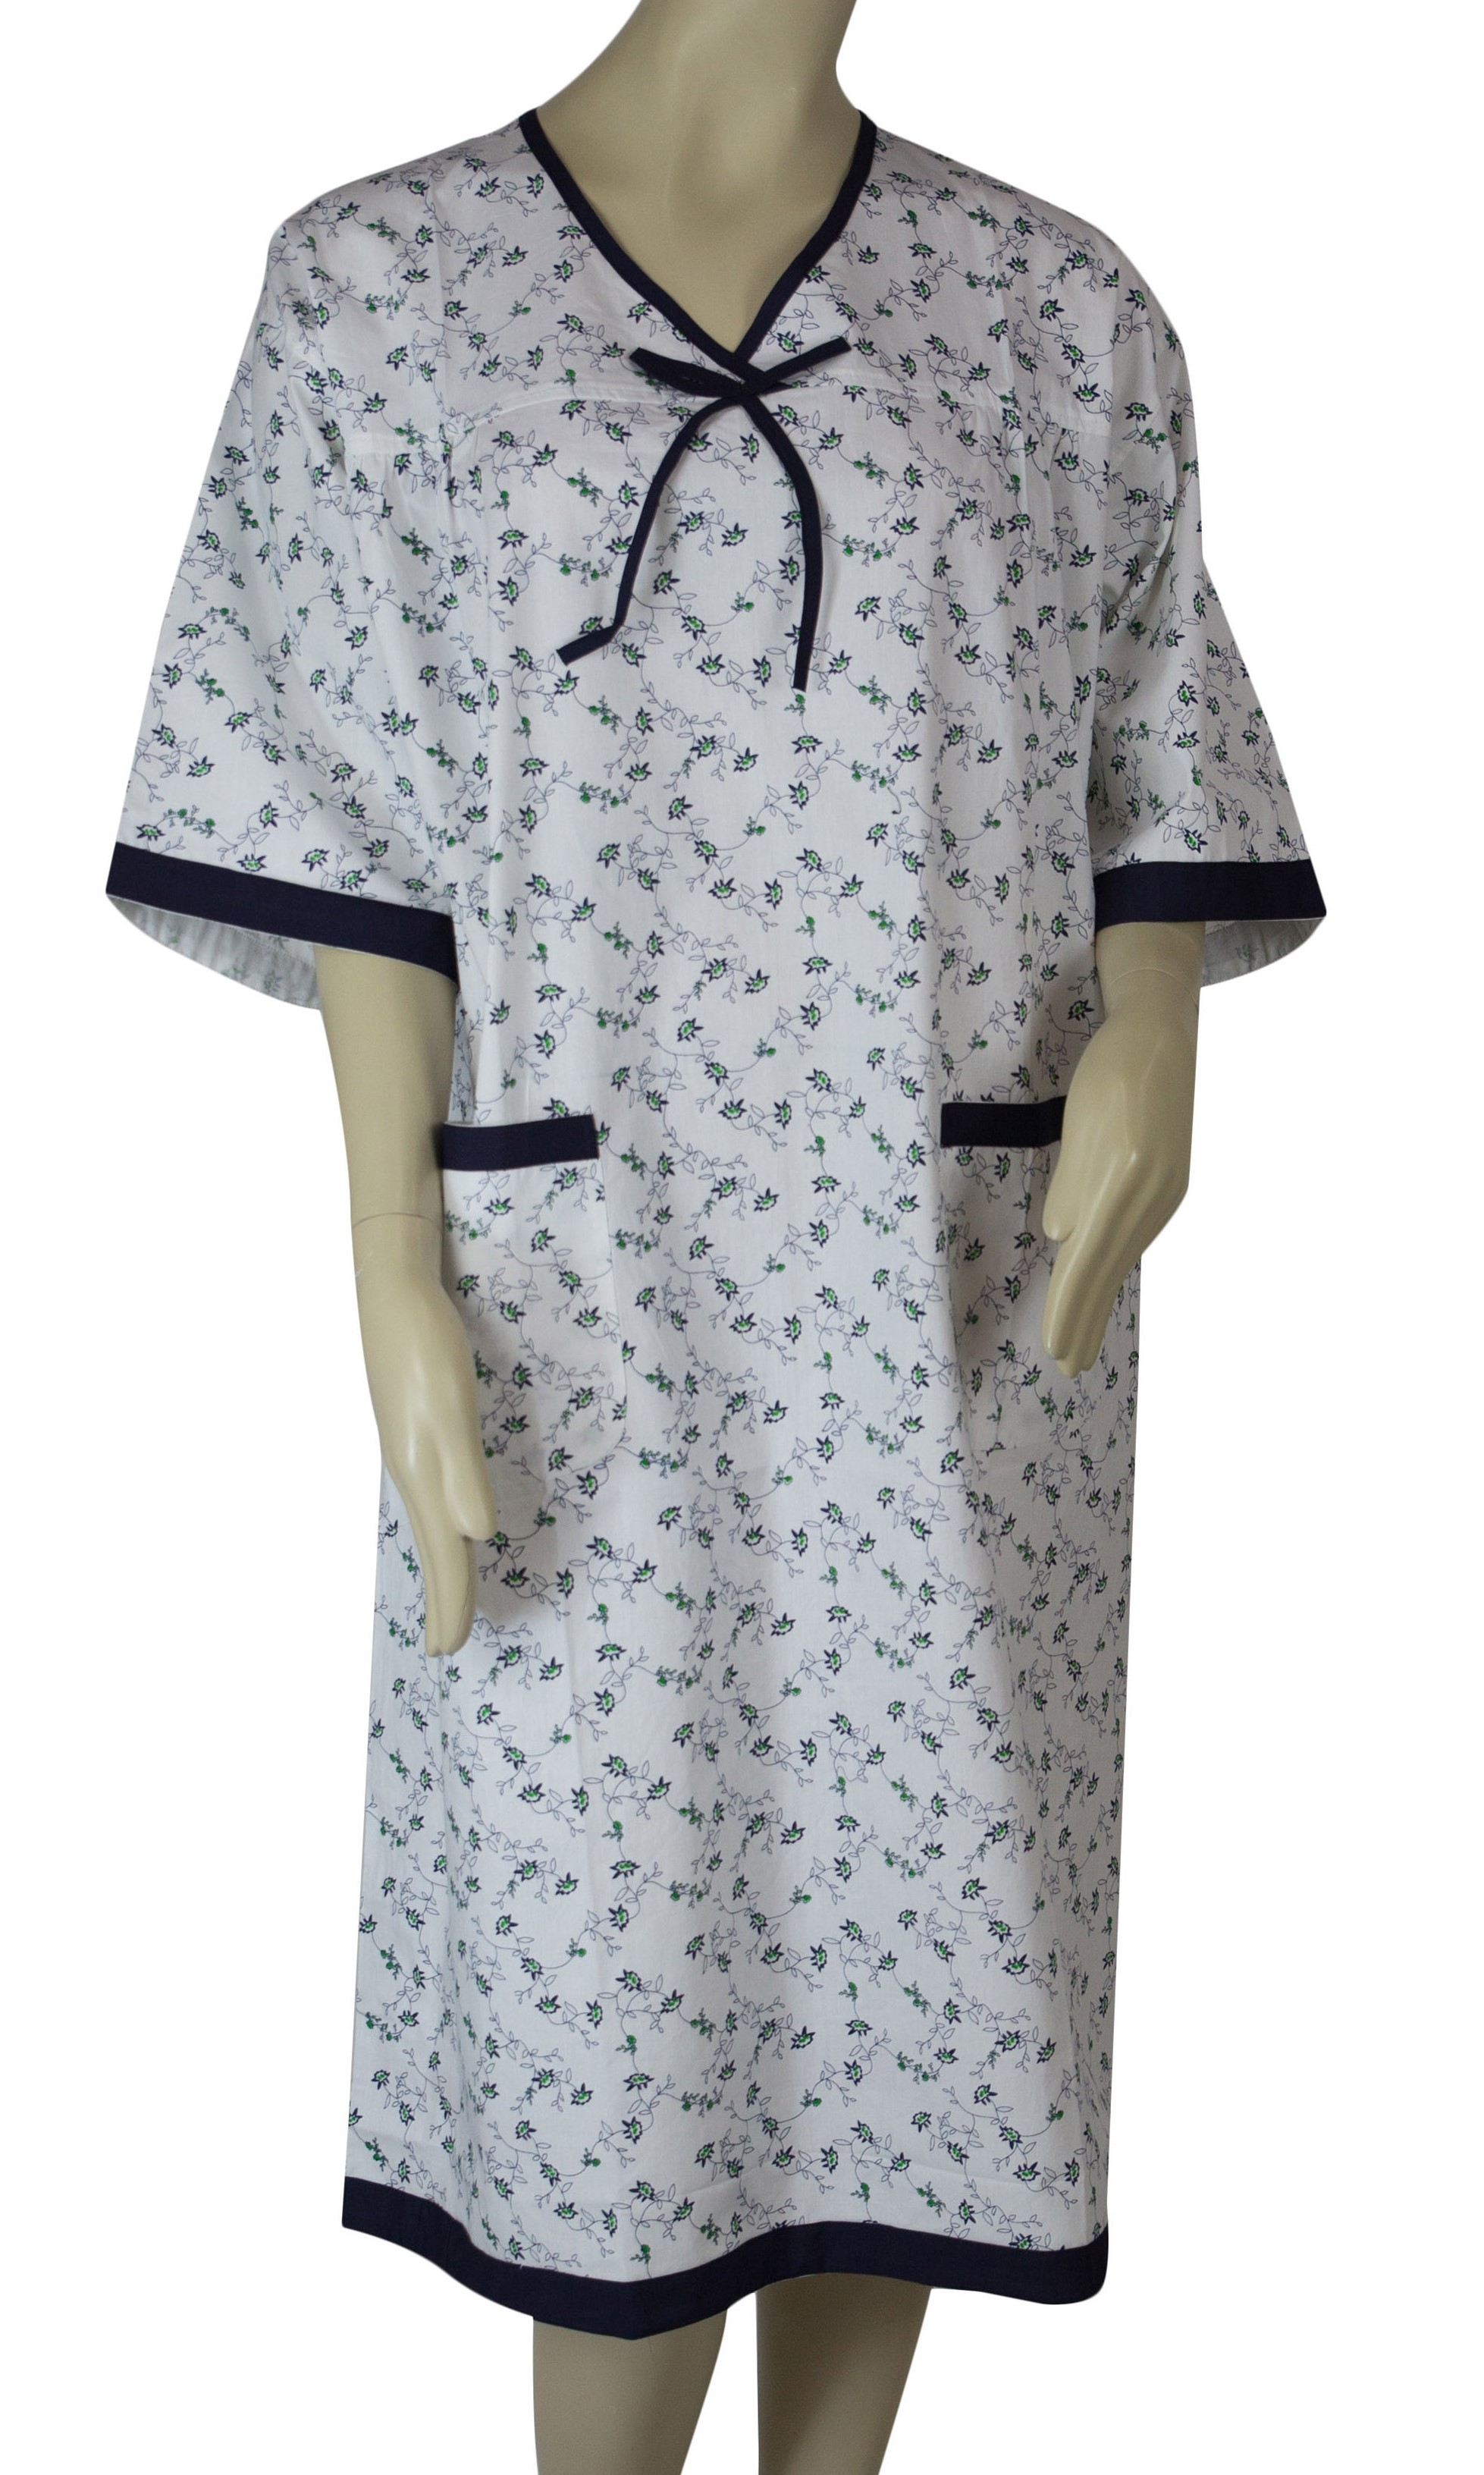 PatientGown-SP24